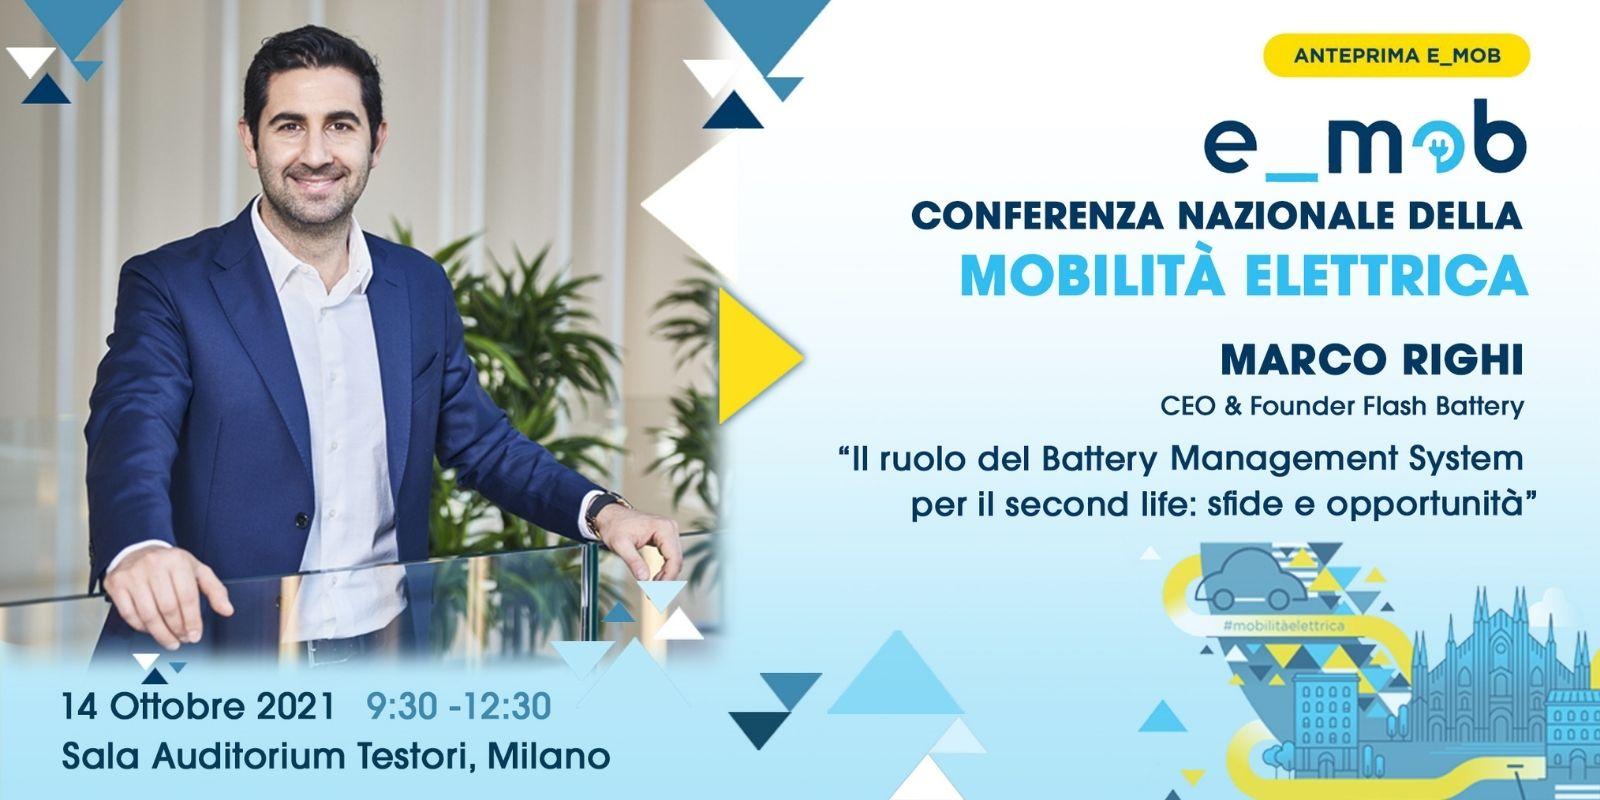 conference emob marco righi event